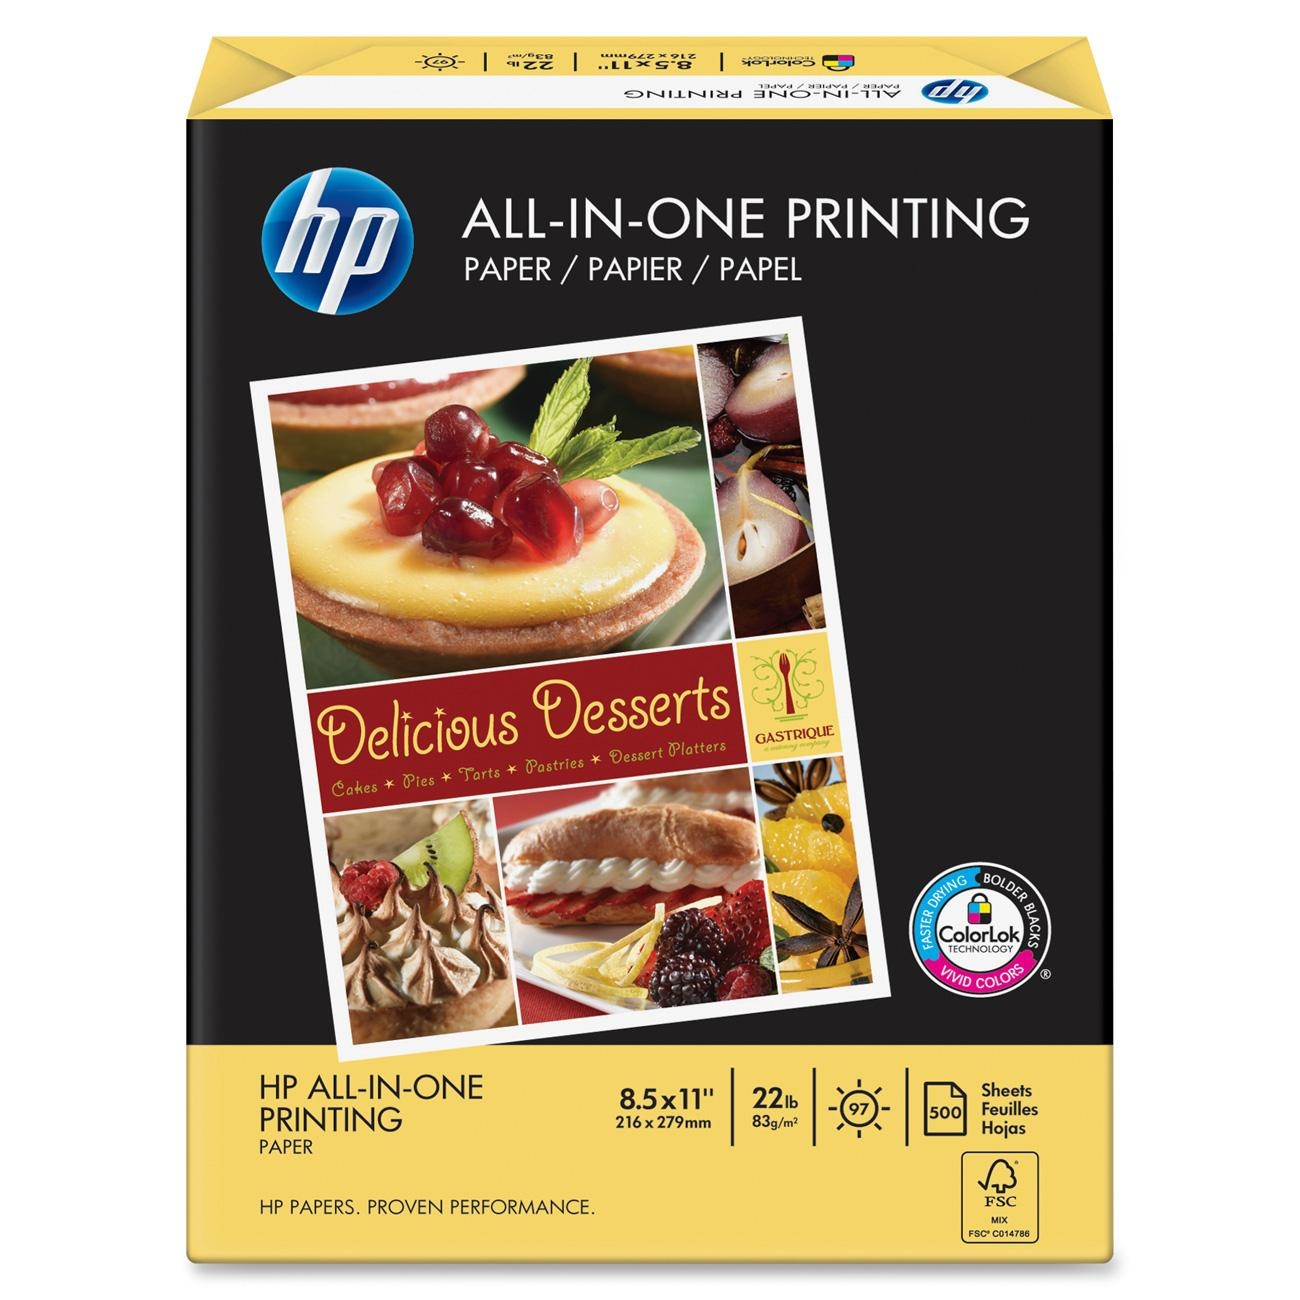 HP 207010 All-in-One Printing Paper